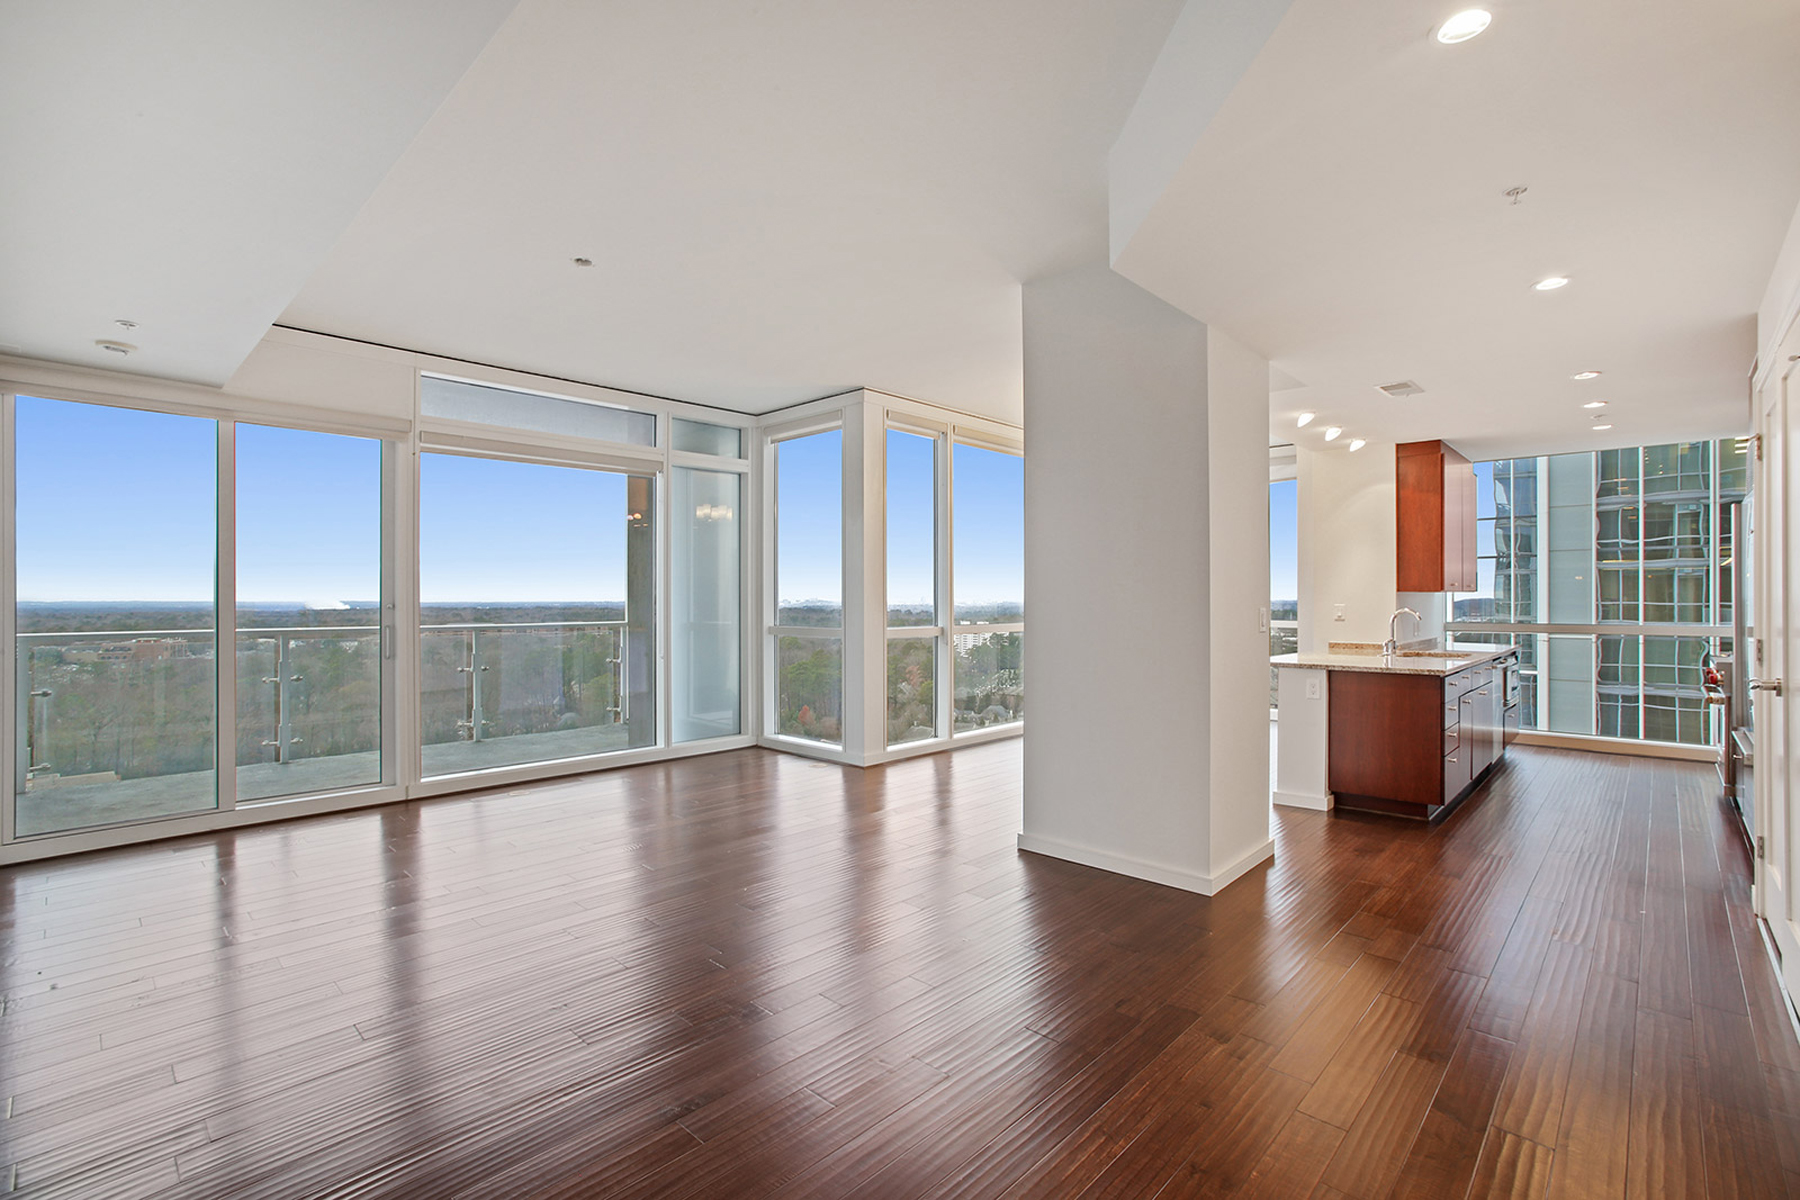 Condominium for Rent at Beautifully Appointed Two Bedroom, Three Bath Condo With Stunning Views 3325 Piedmont Road NE No. 1502 Atlanta, Georgia 30305 United States